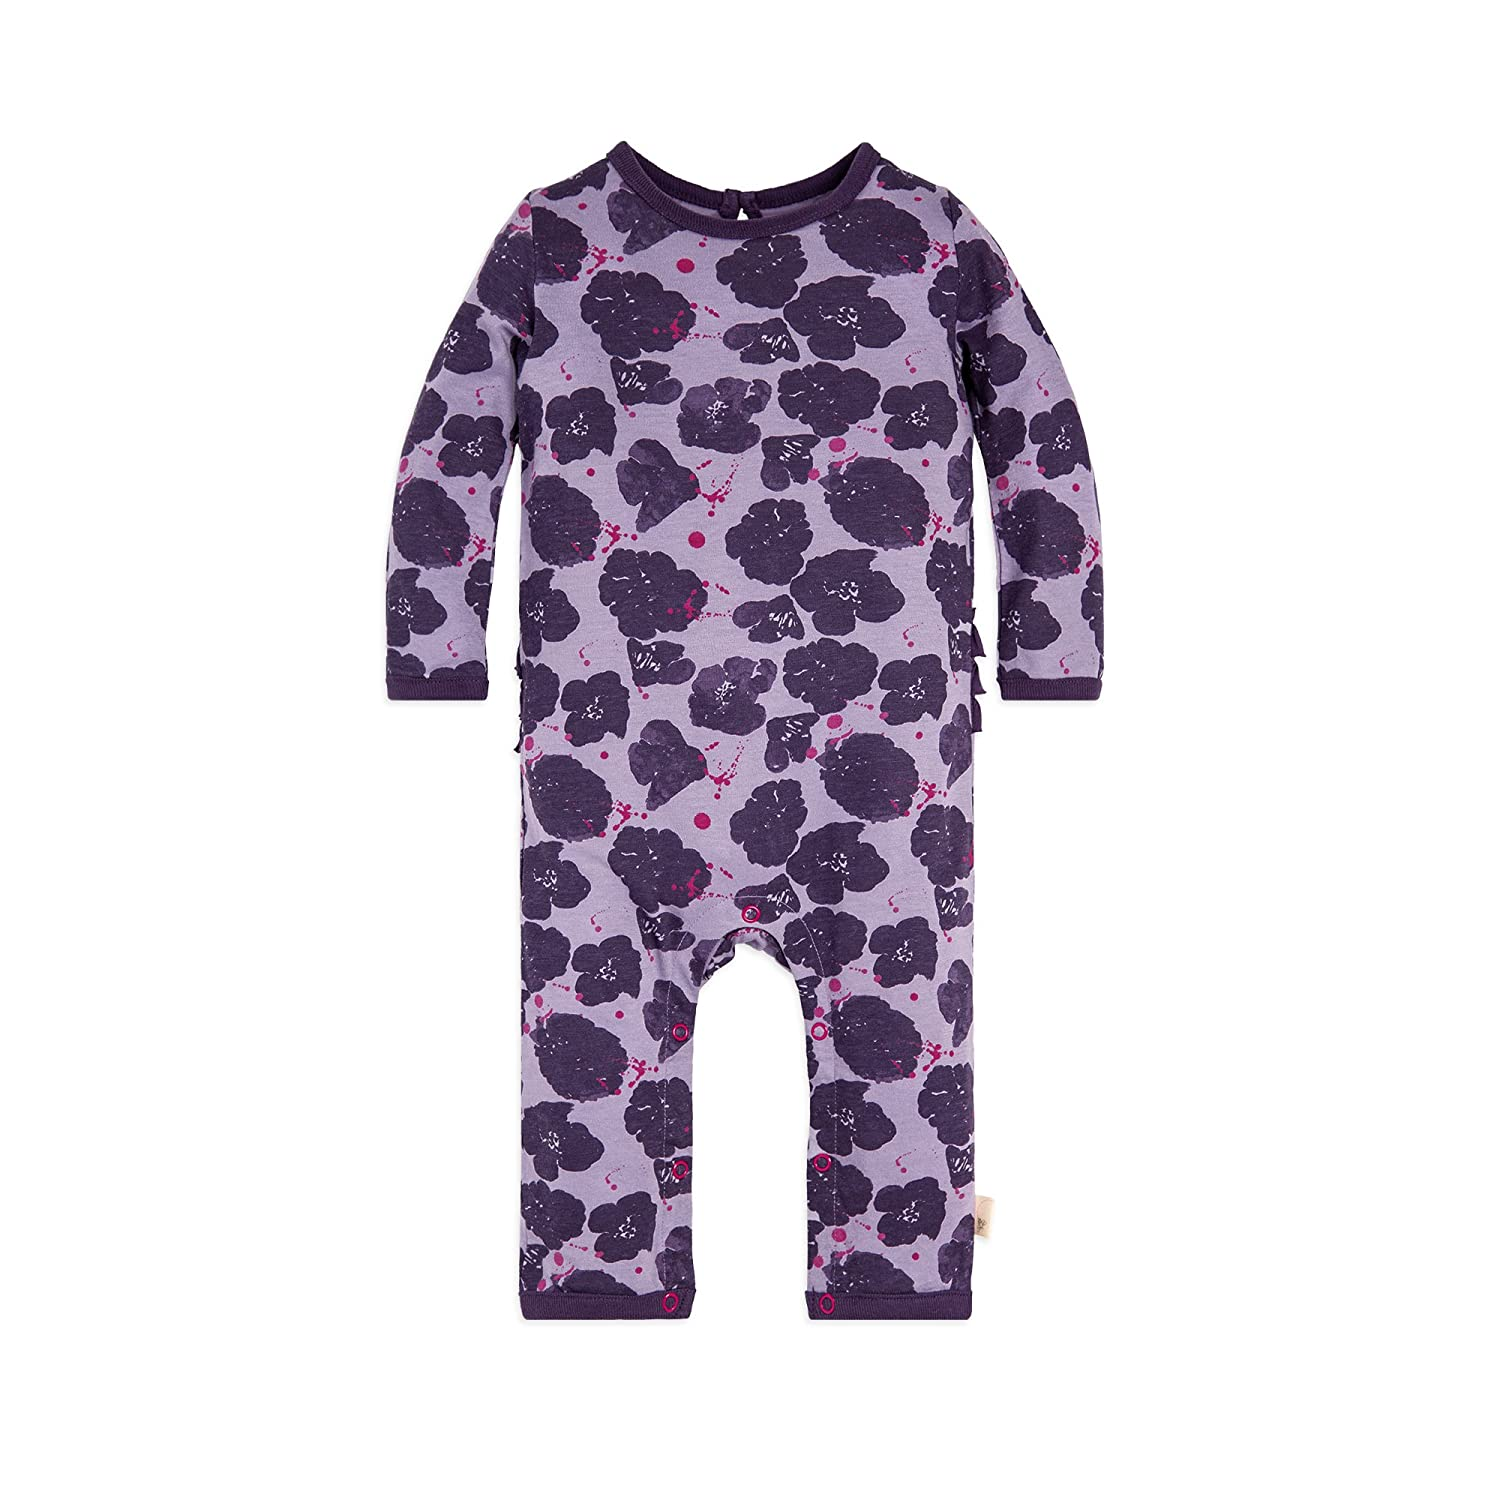 1b307bec4385 Burt s Bees Baby - Girls Long Sleeve Romper Jumpsuit One piece outfits make  changes hassle-free